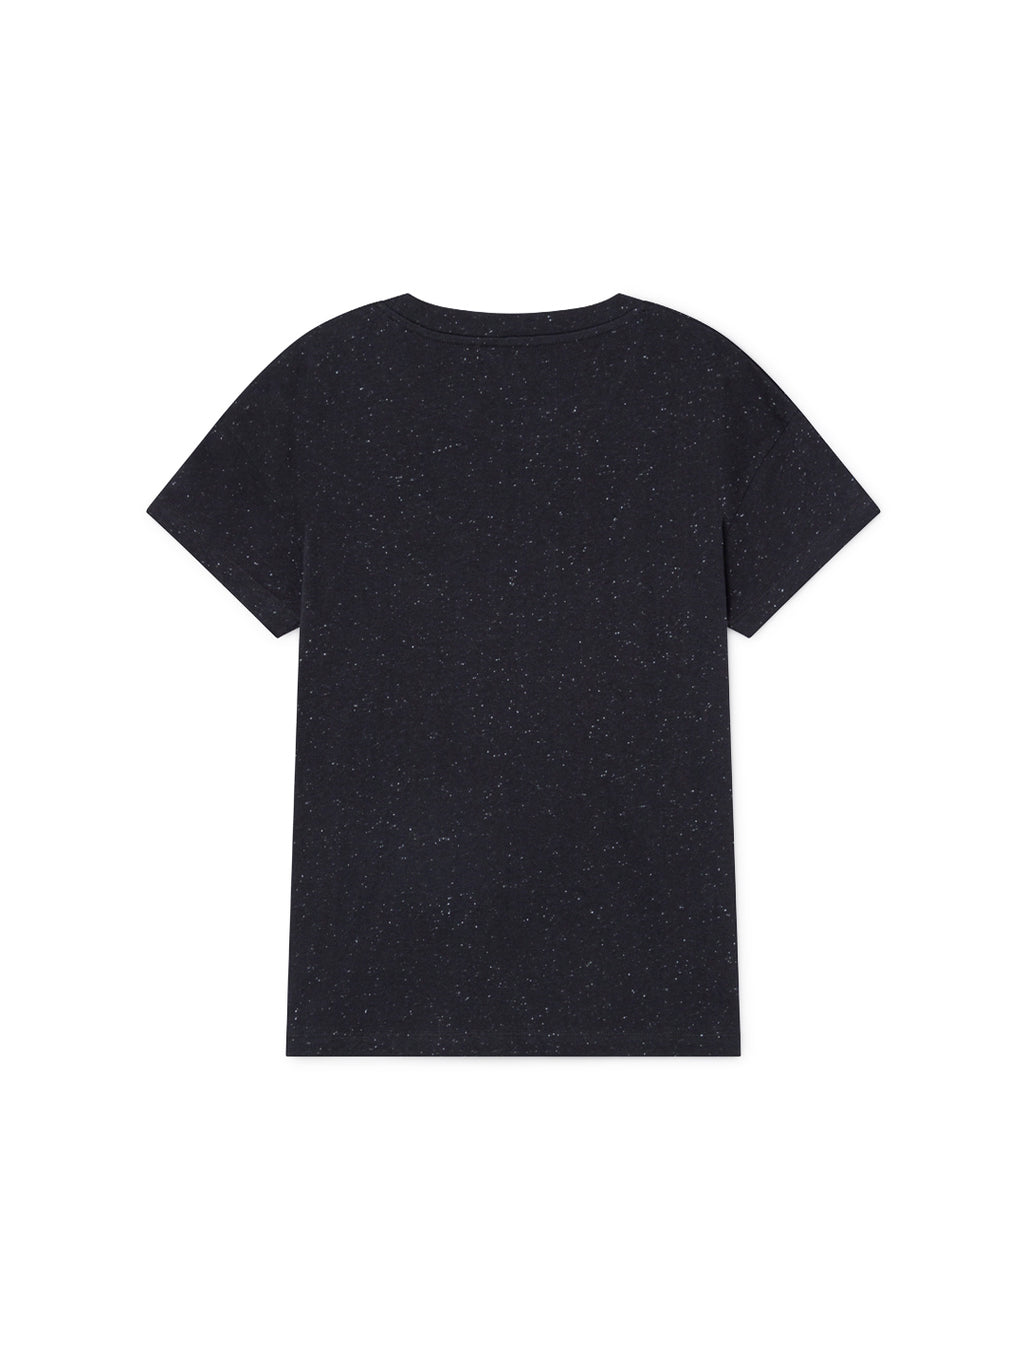 TWOTHIRDS Womens Tee: Sepanggar - Black back